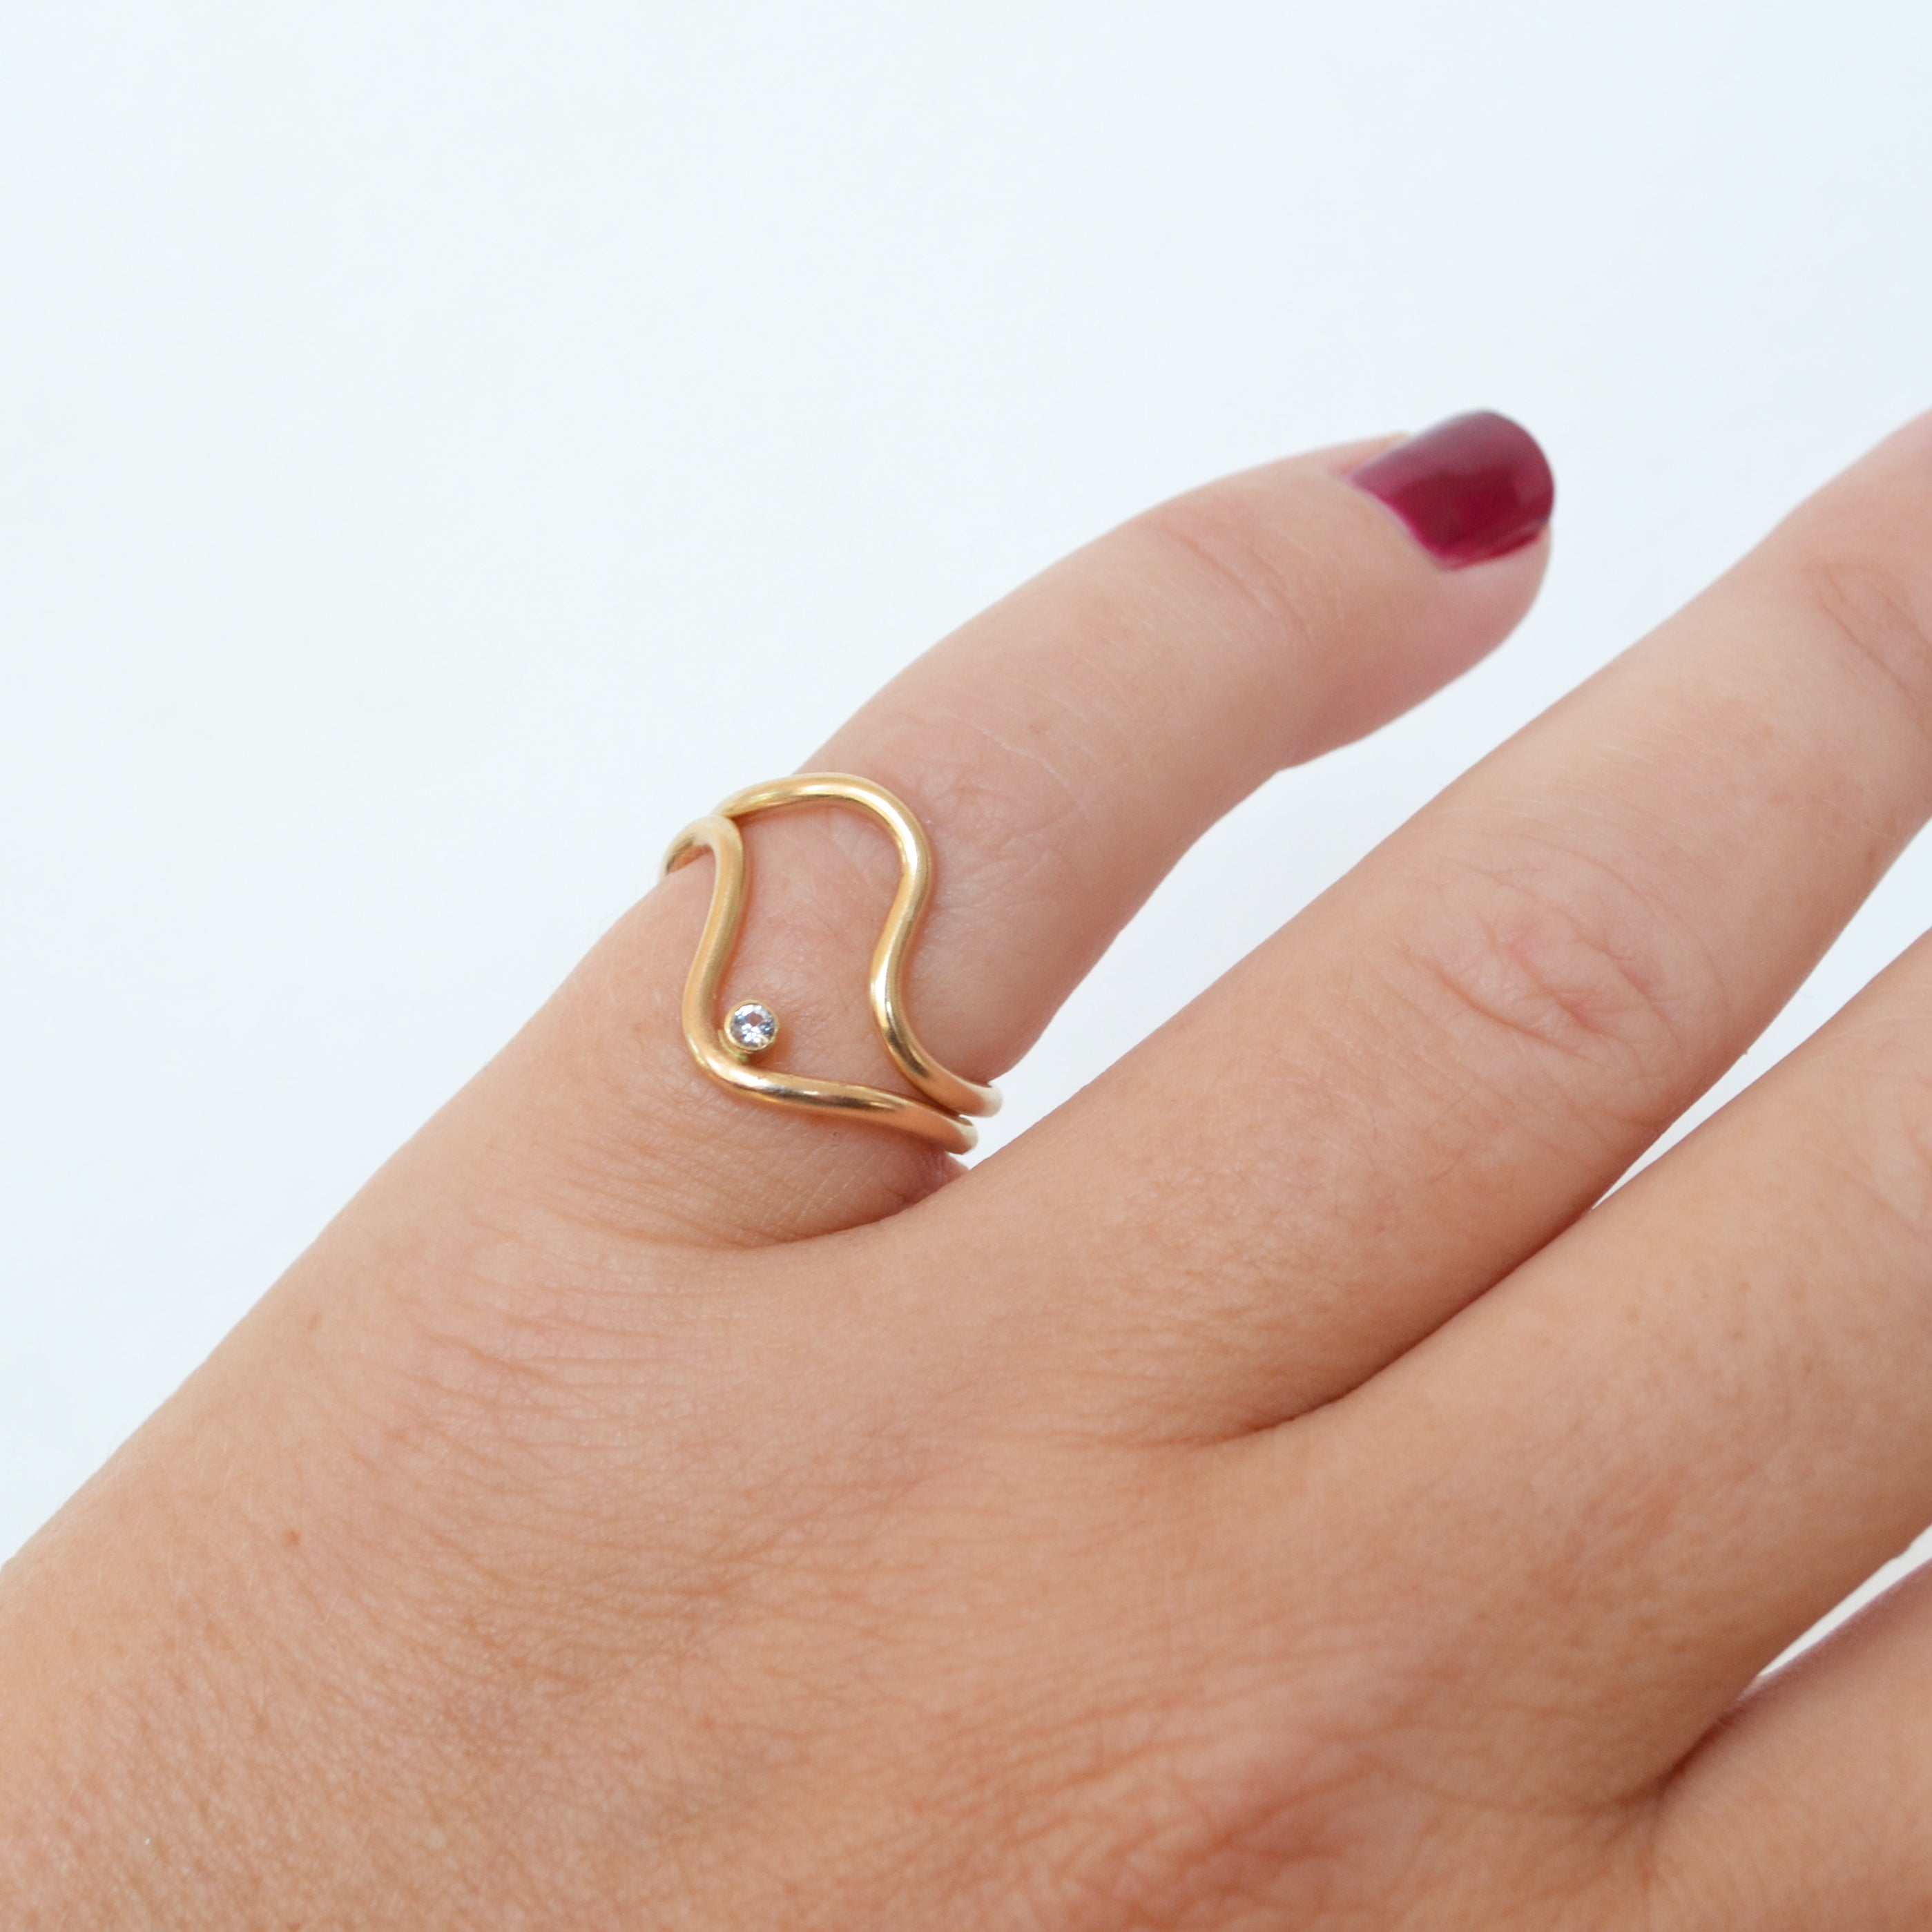 Easy Rider Ring in CZ, Gold or Silver